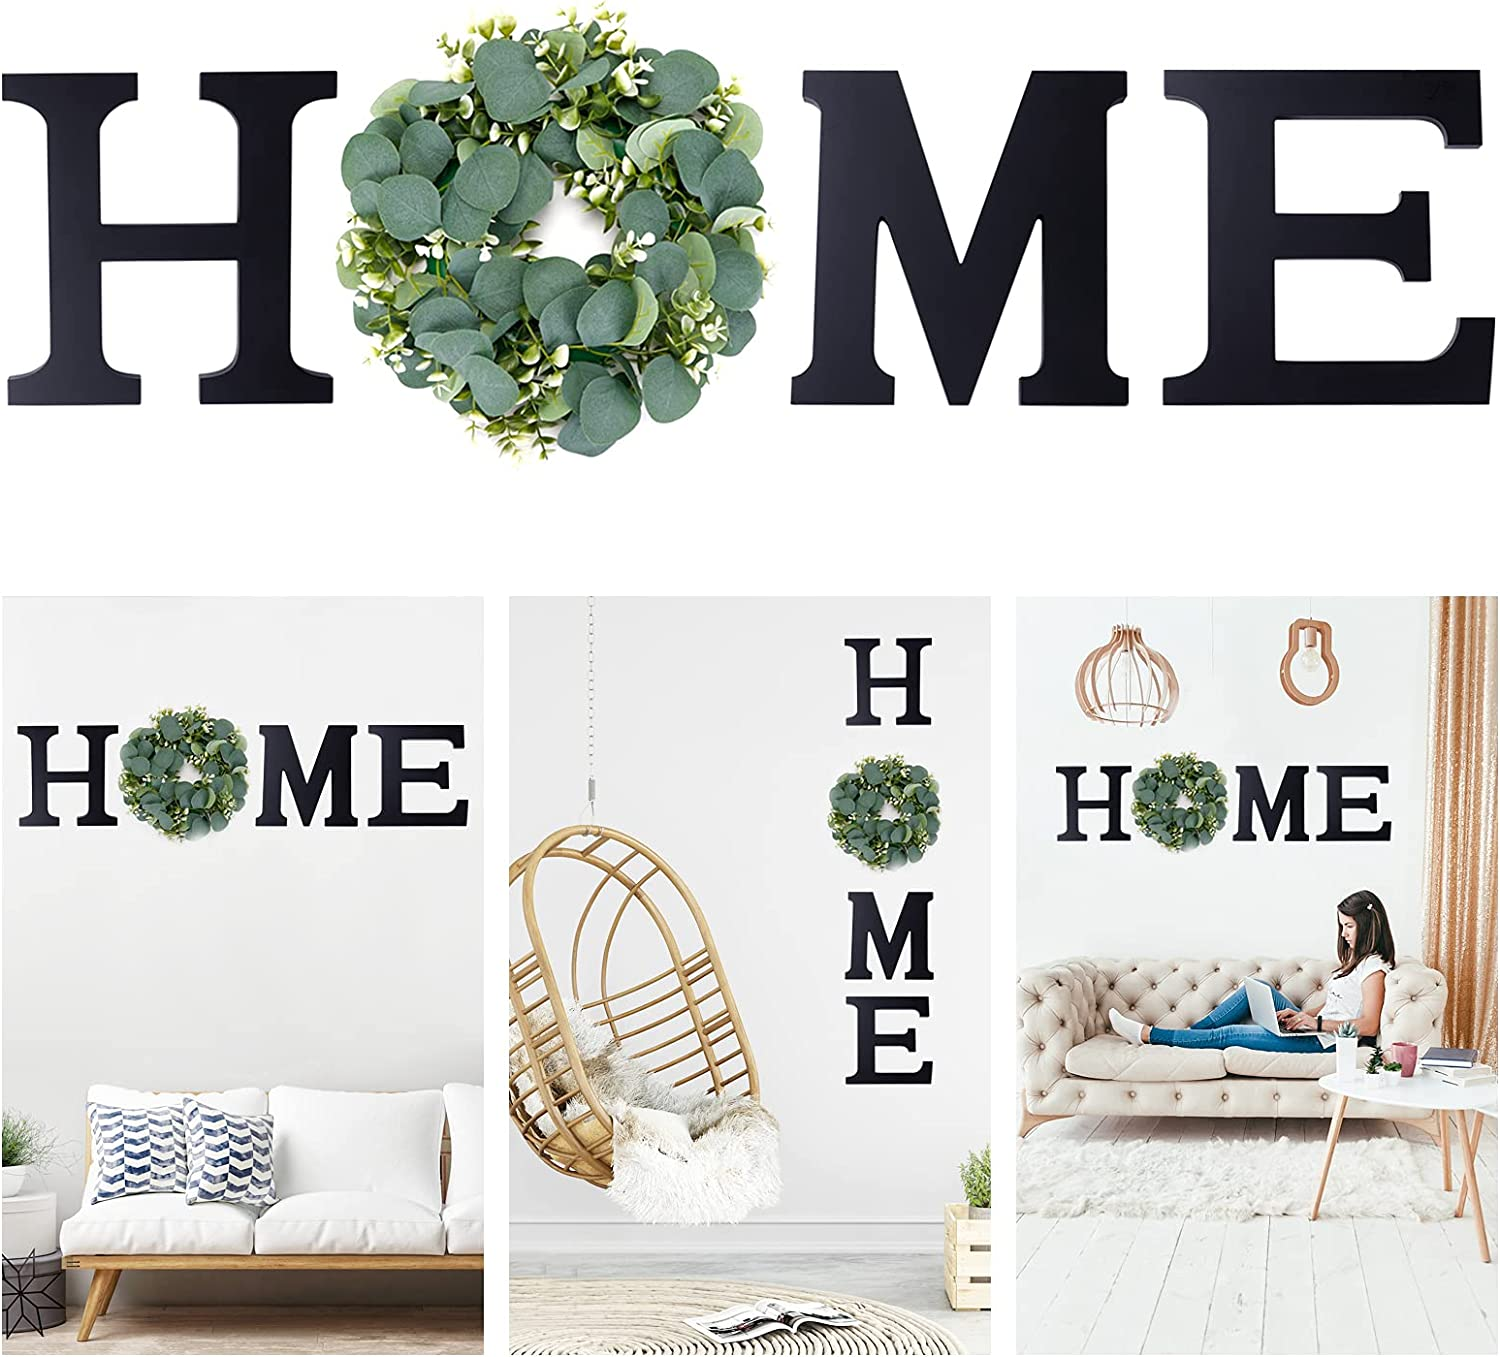 Newtion Wooden Home Sign, Wall Letters with Wreath Artificial Eucalyptus for O, Rustic Hanging Home Letters Farmhouse Wall Art Decor for Living Room, Dining Room, Kitchen, Entryway, Housewarming Gift